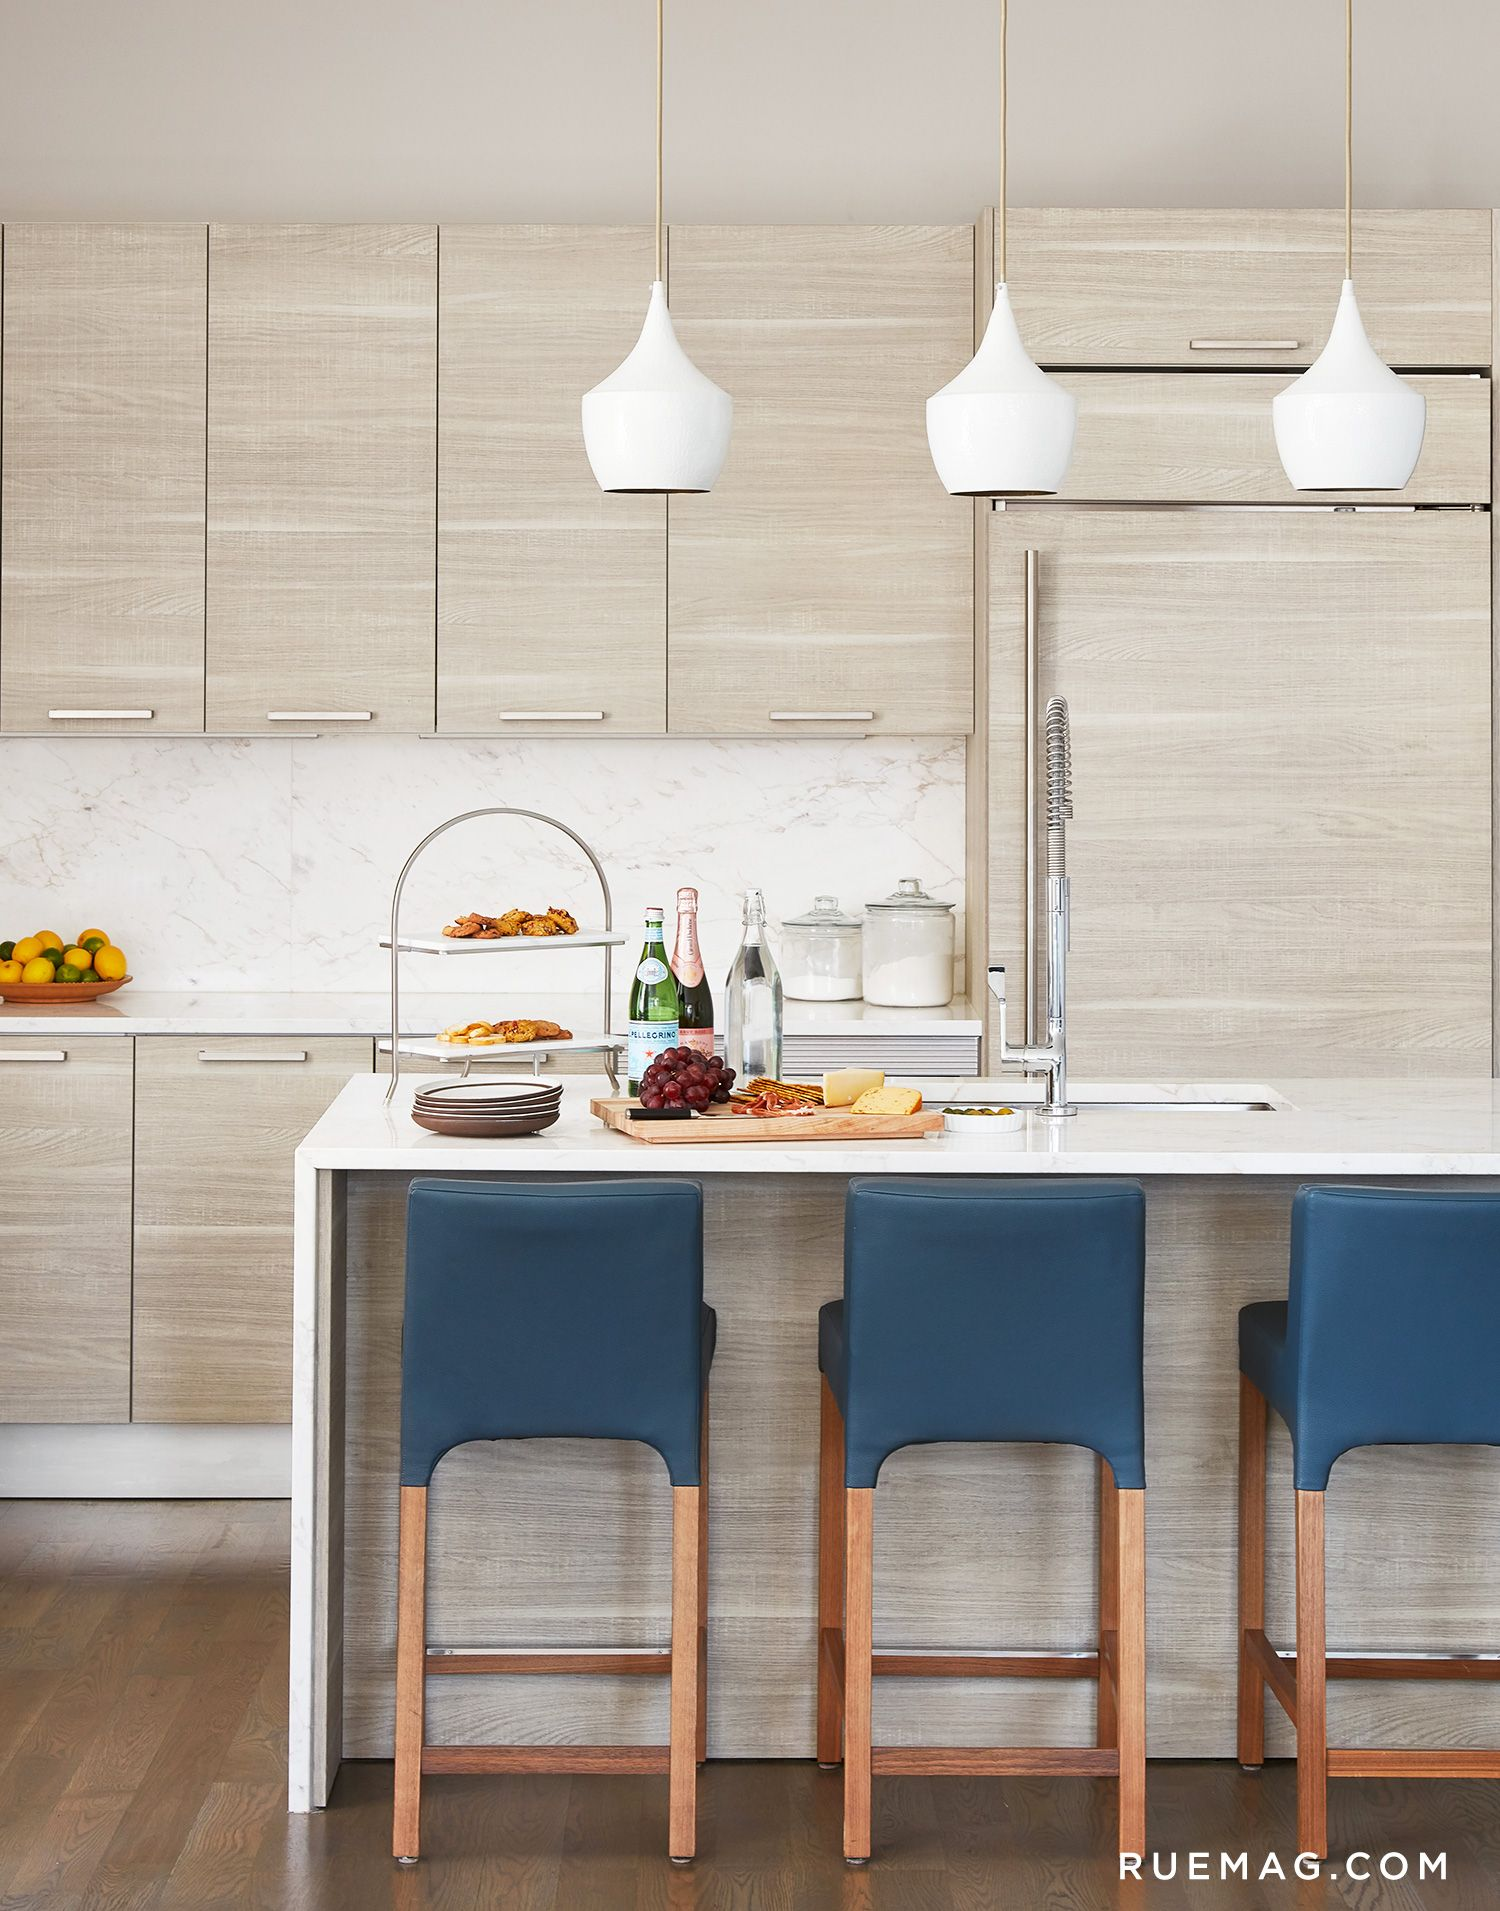 Sleek kitchen with blue leather bar stools and white pendant lights ...